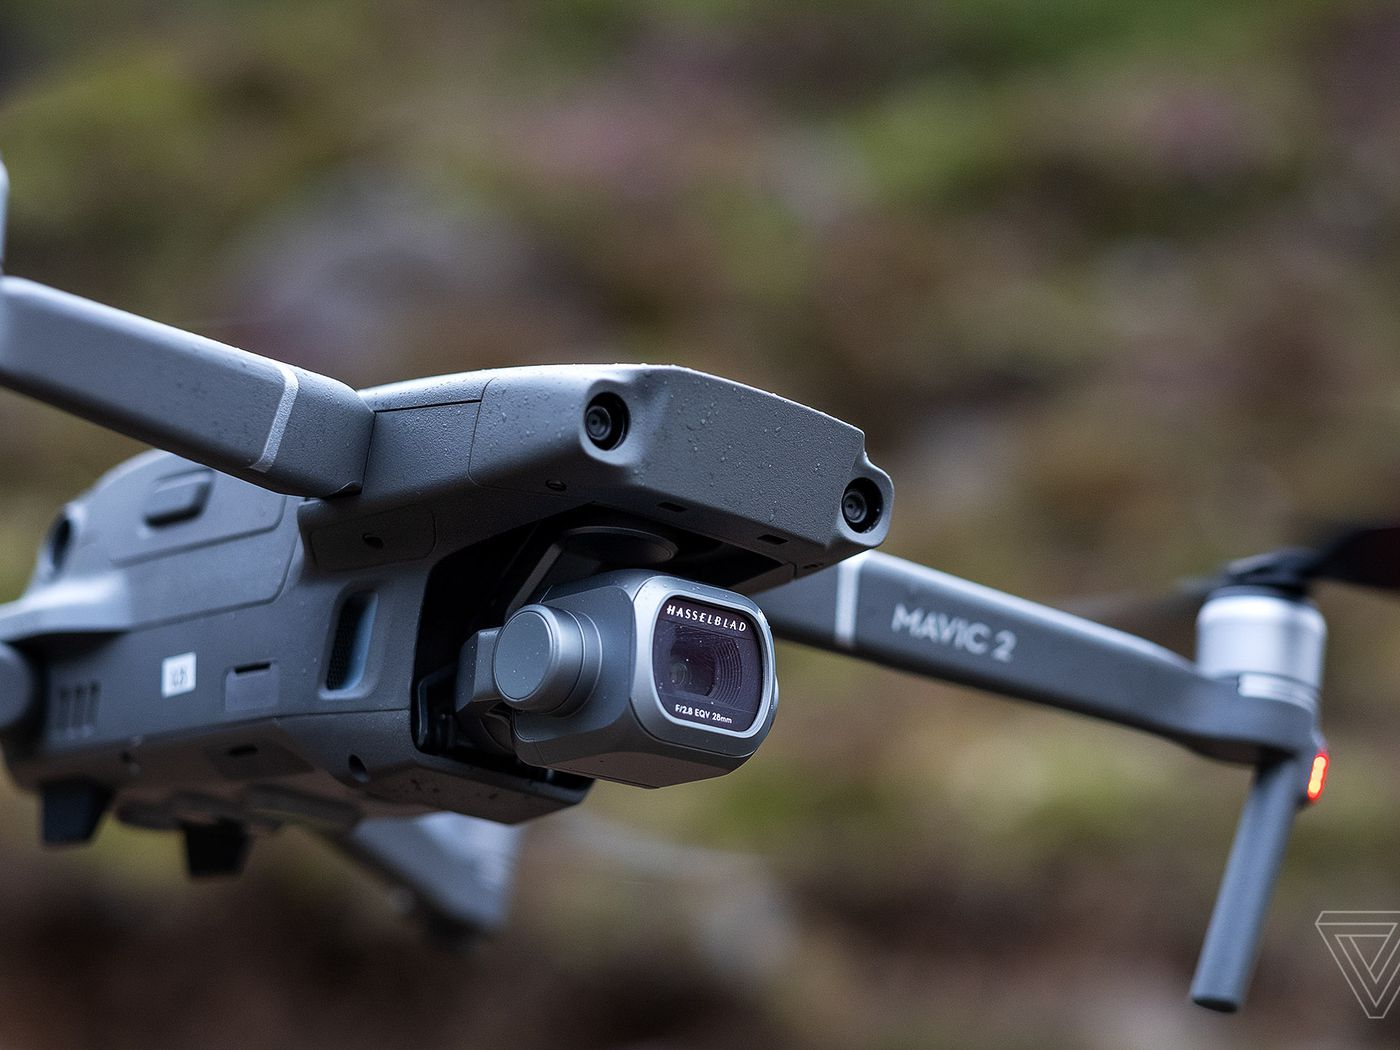 DJI's new Mavic 2 drones have upgraded cameras and zoom